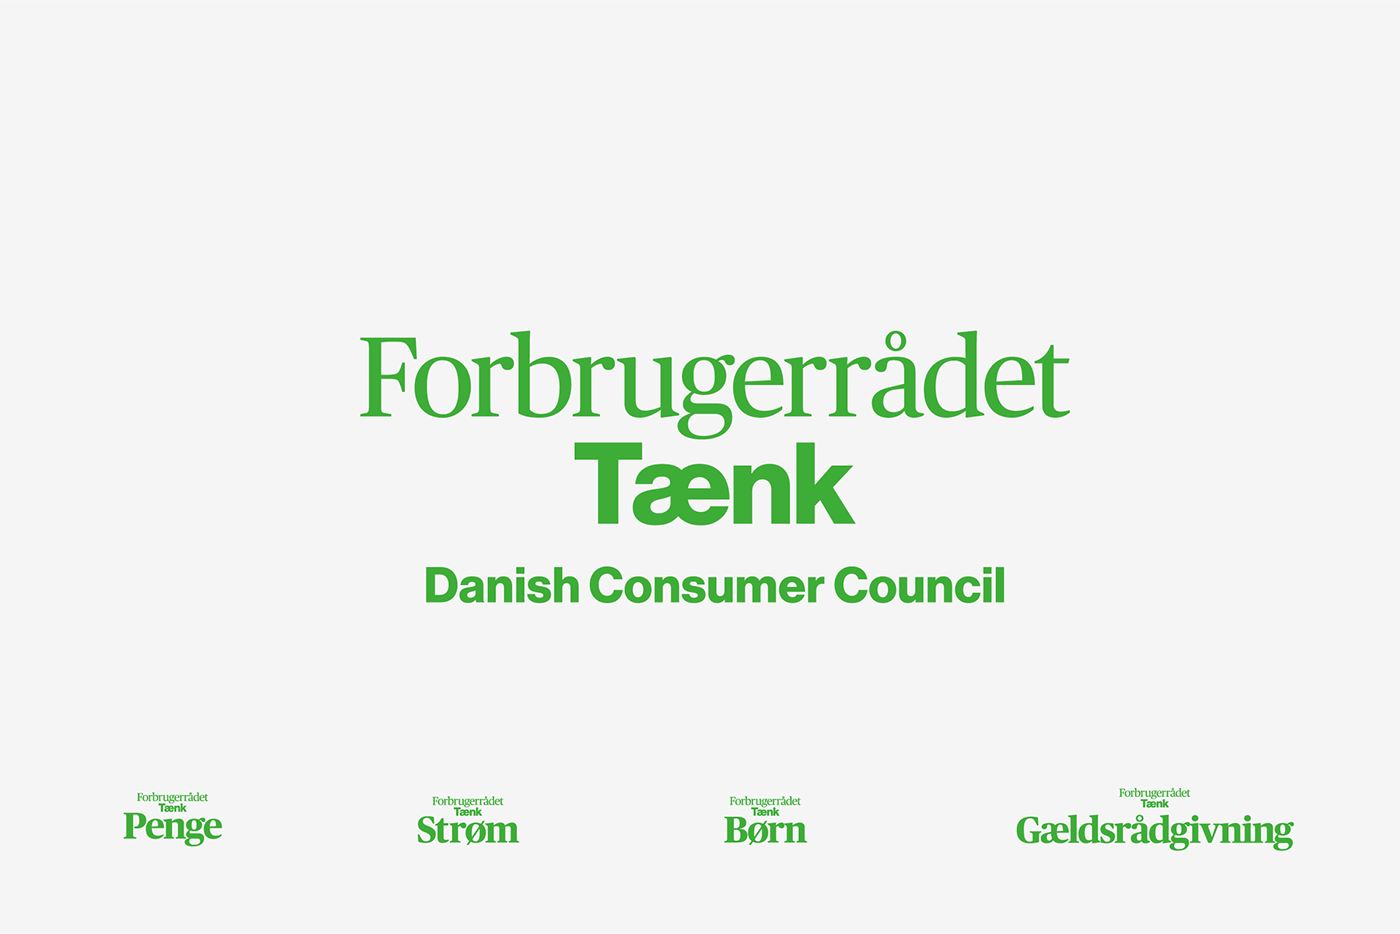 fab1f6b8a23 The Danish Consumer Council: Forbrugerrådet Tænk on Behance